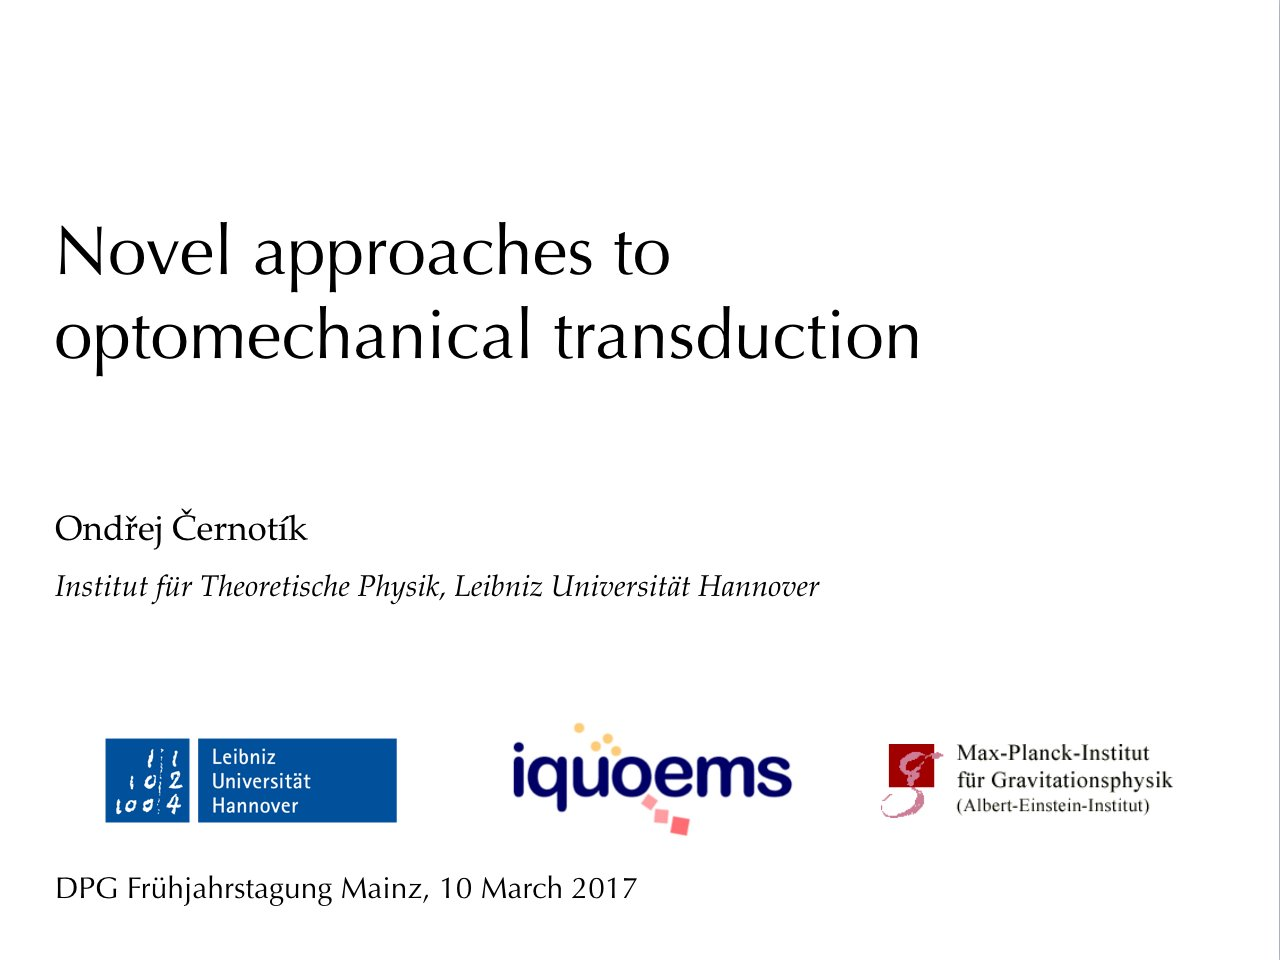 And now, almost at the end, it's time for my talk: Novel approaches to optomechanica transduction. Starting now in room P4. #dpgmz17 https://t.co/LIk65iLaJO